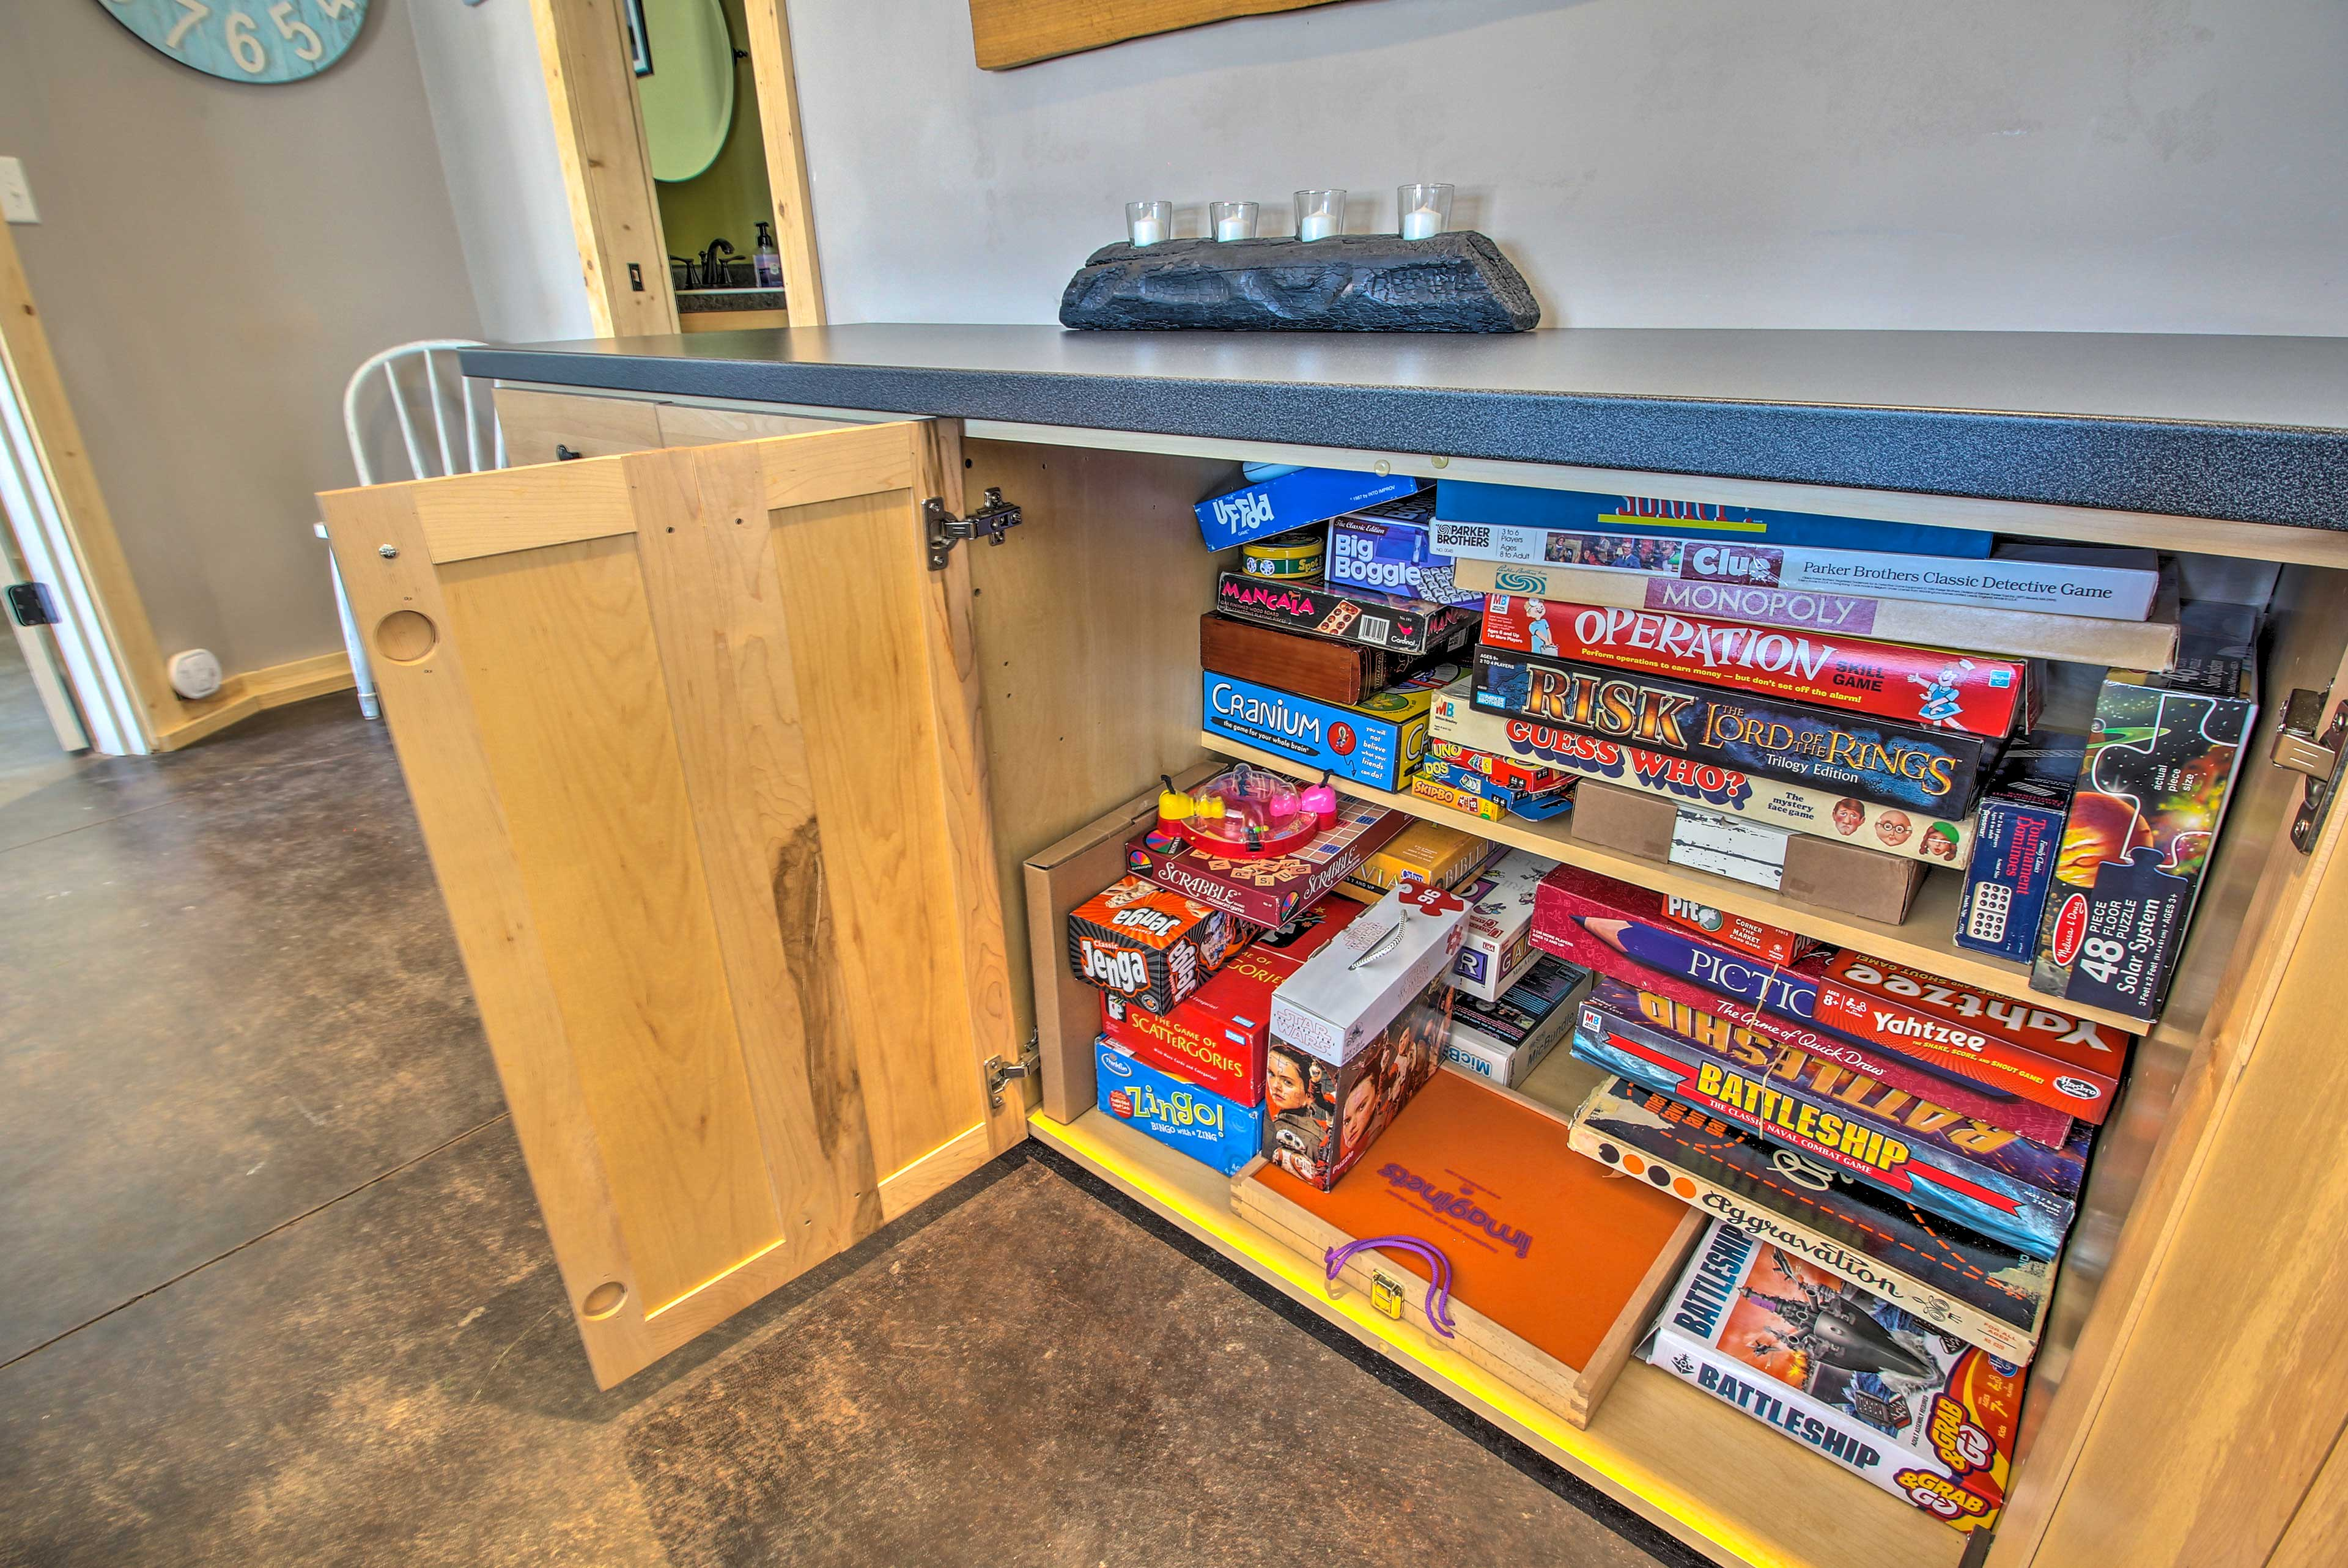 Find plenty of board games to keep the whole crew entertained!